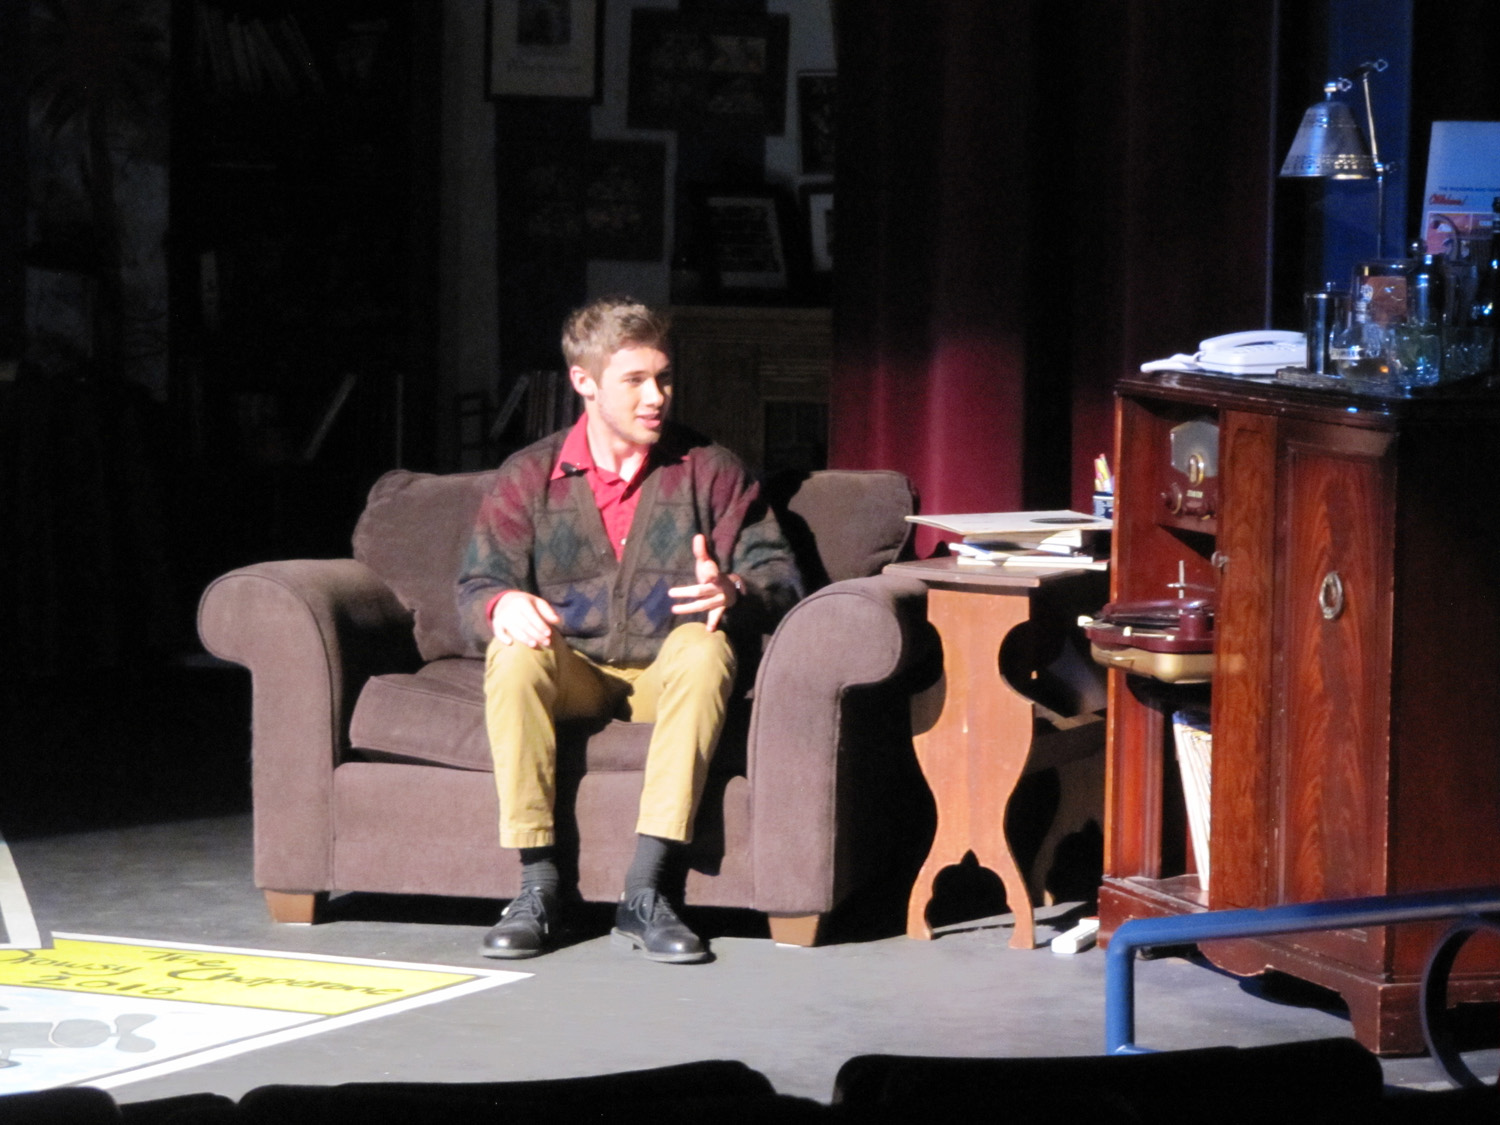 William Francis as Man in Chair 2